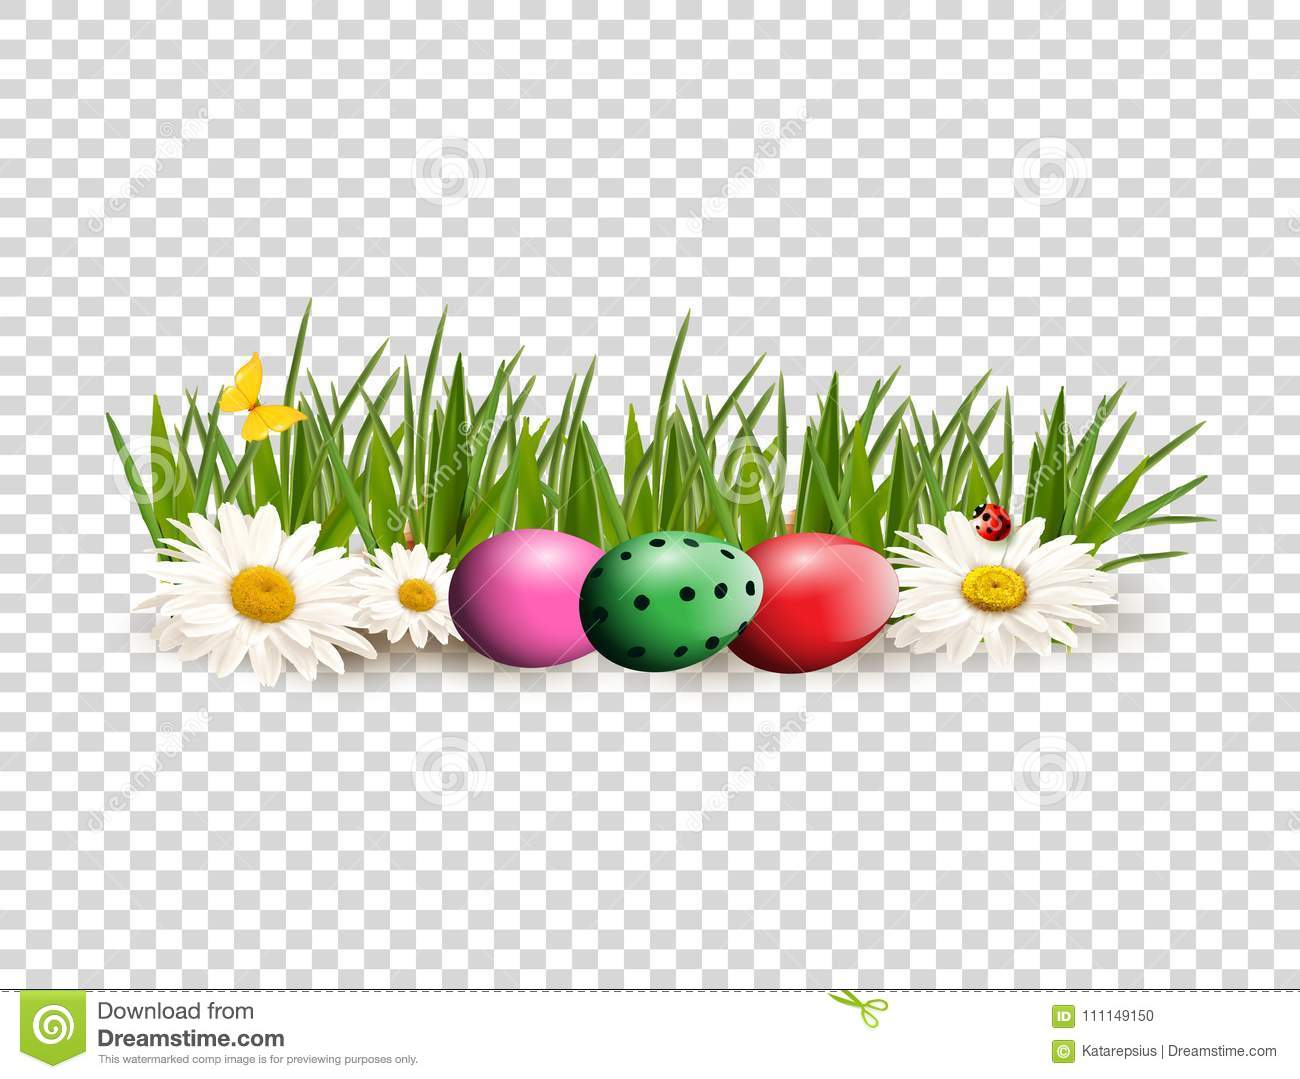 hight resolution of easter clip art for greeting card with dyed eggs lying on gras